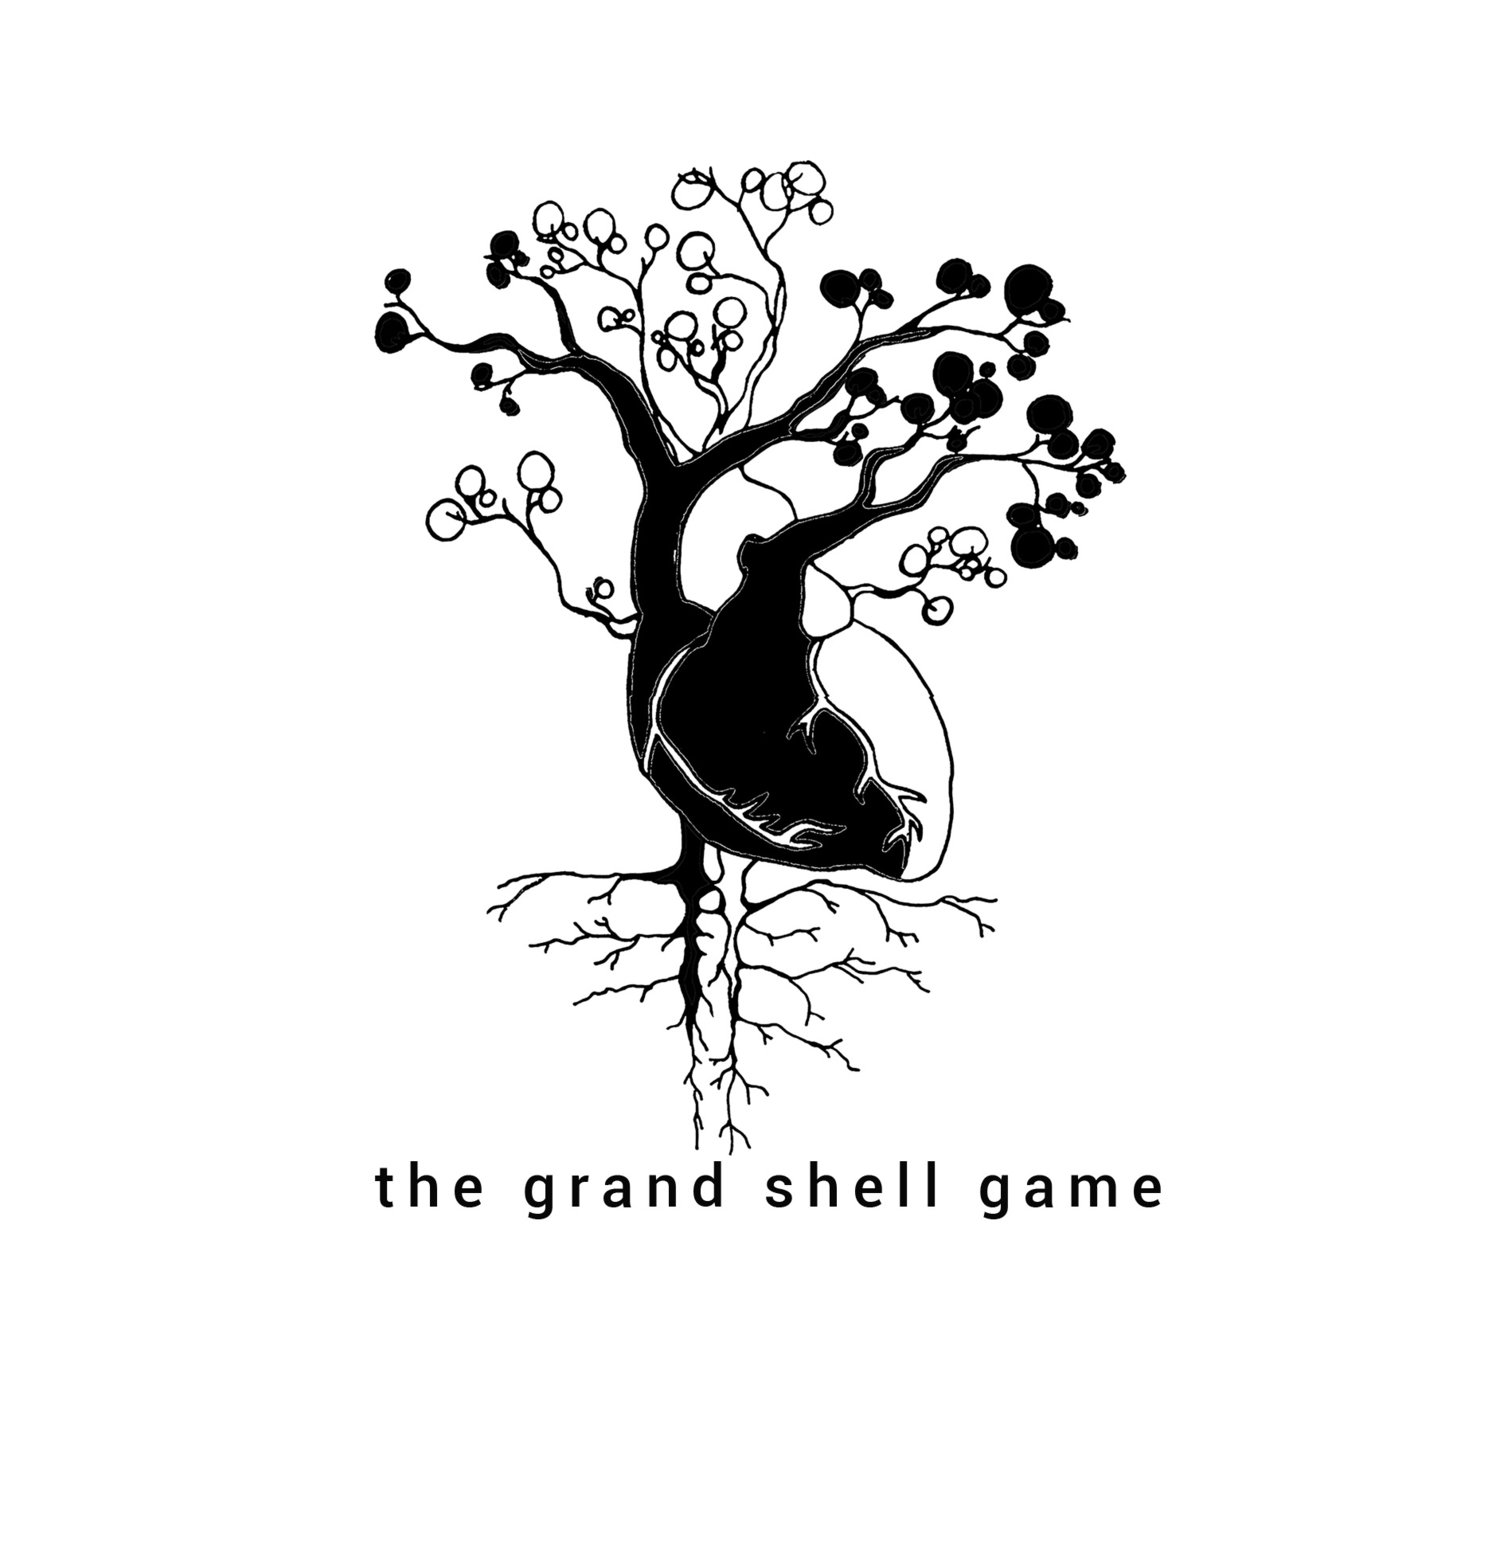 the grand shell game